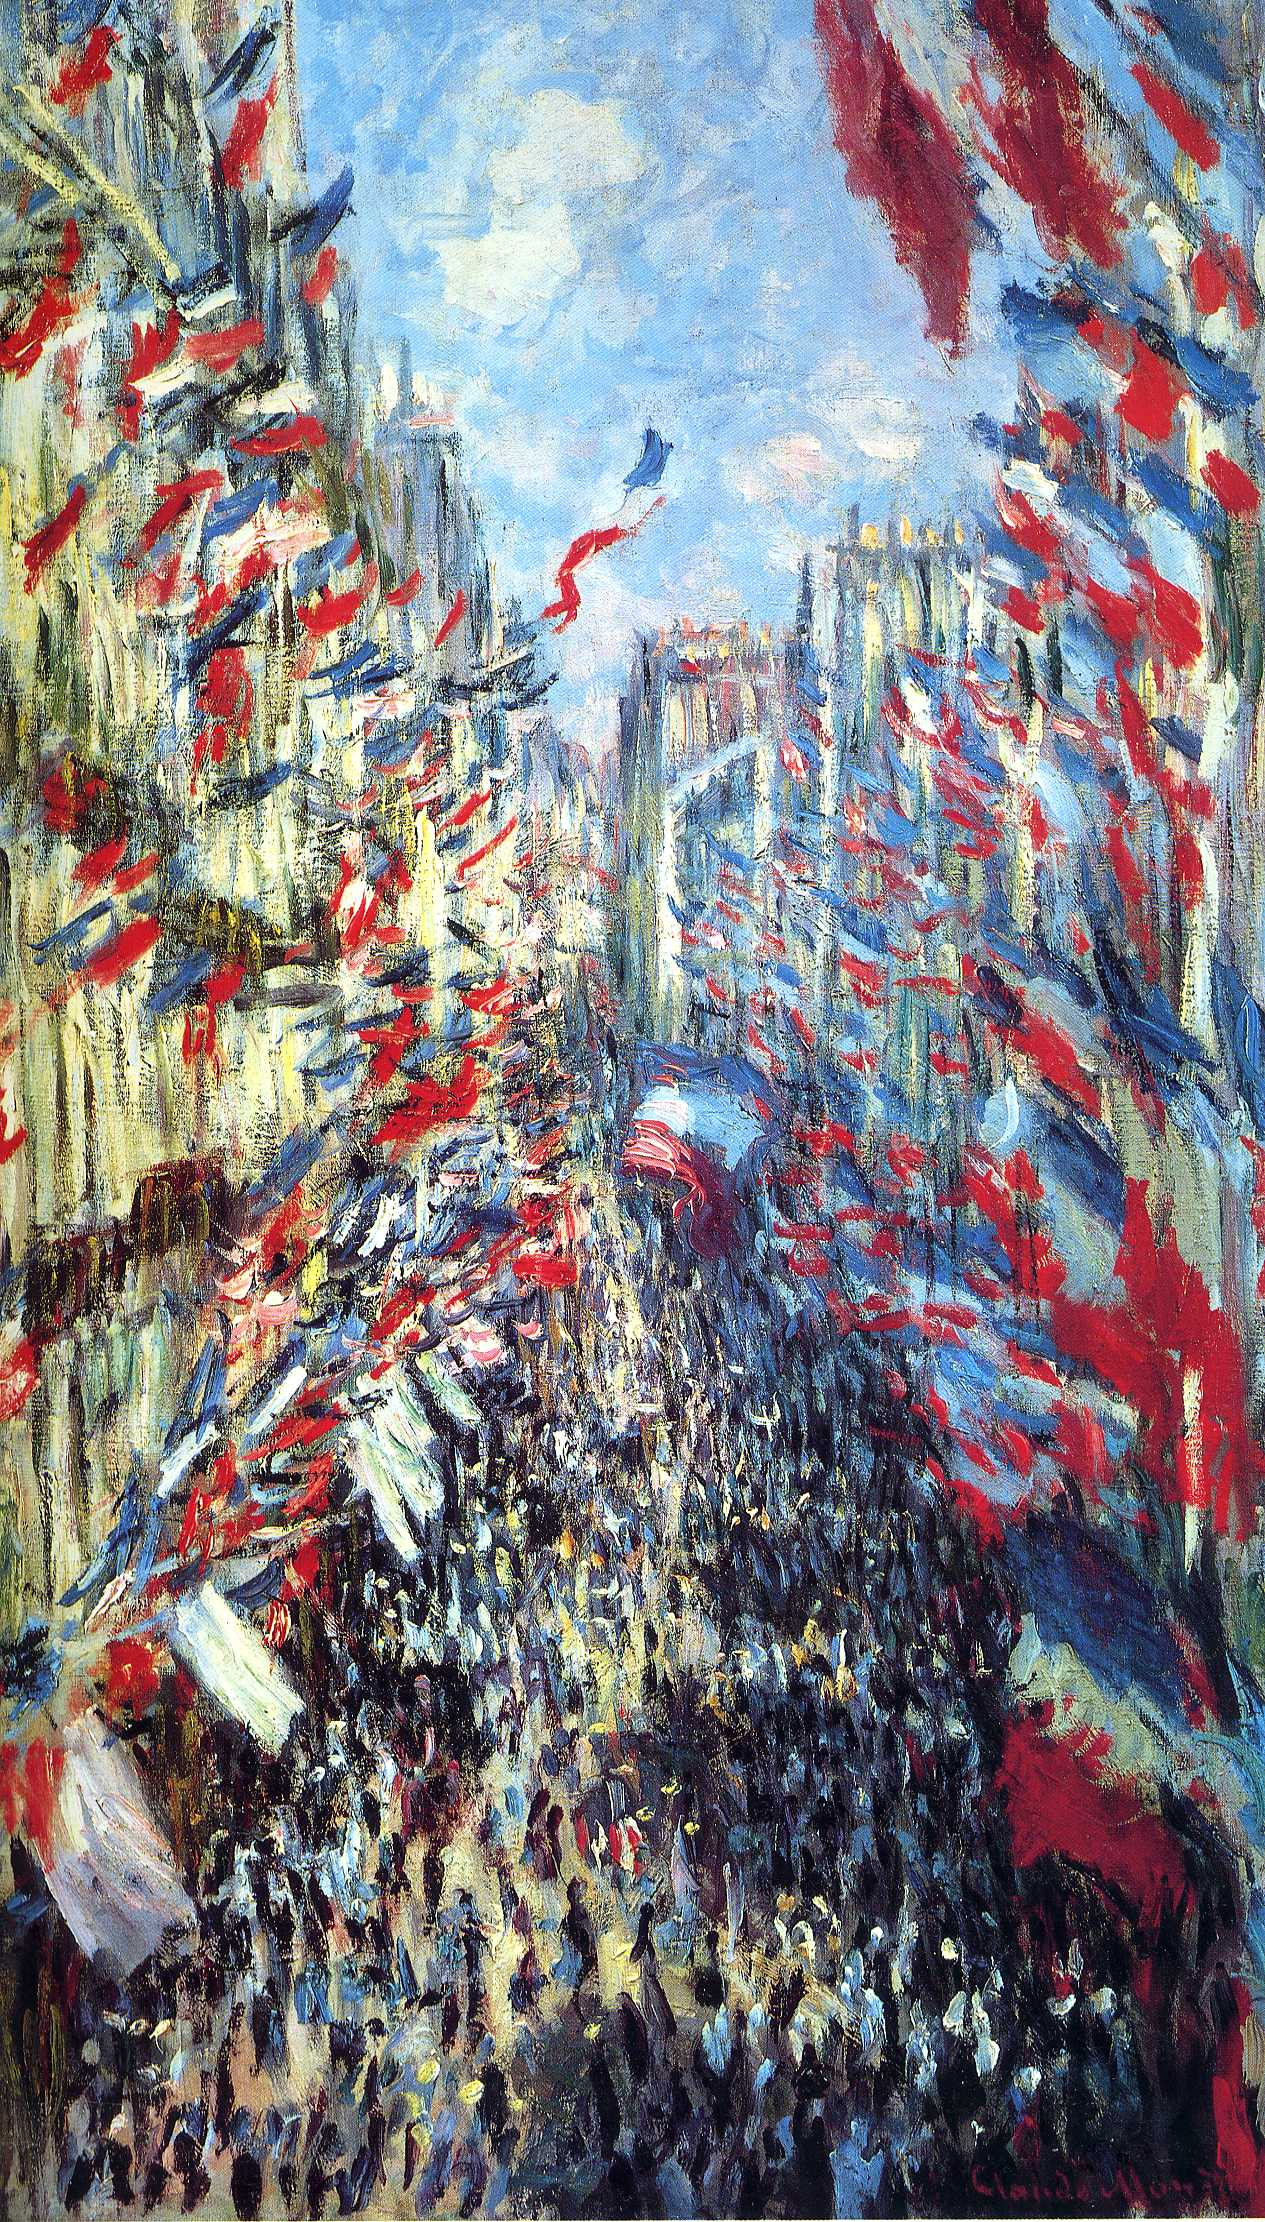 Dorothy was assigned Monet's  Rue Montorgueil  (1870) from the Orsay collection.